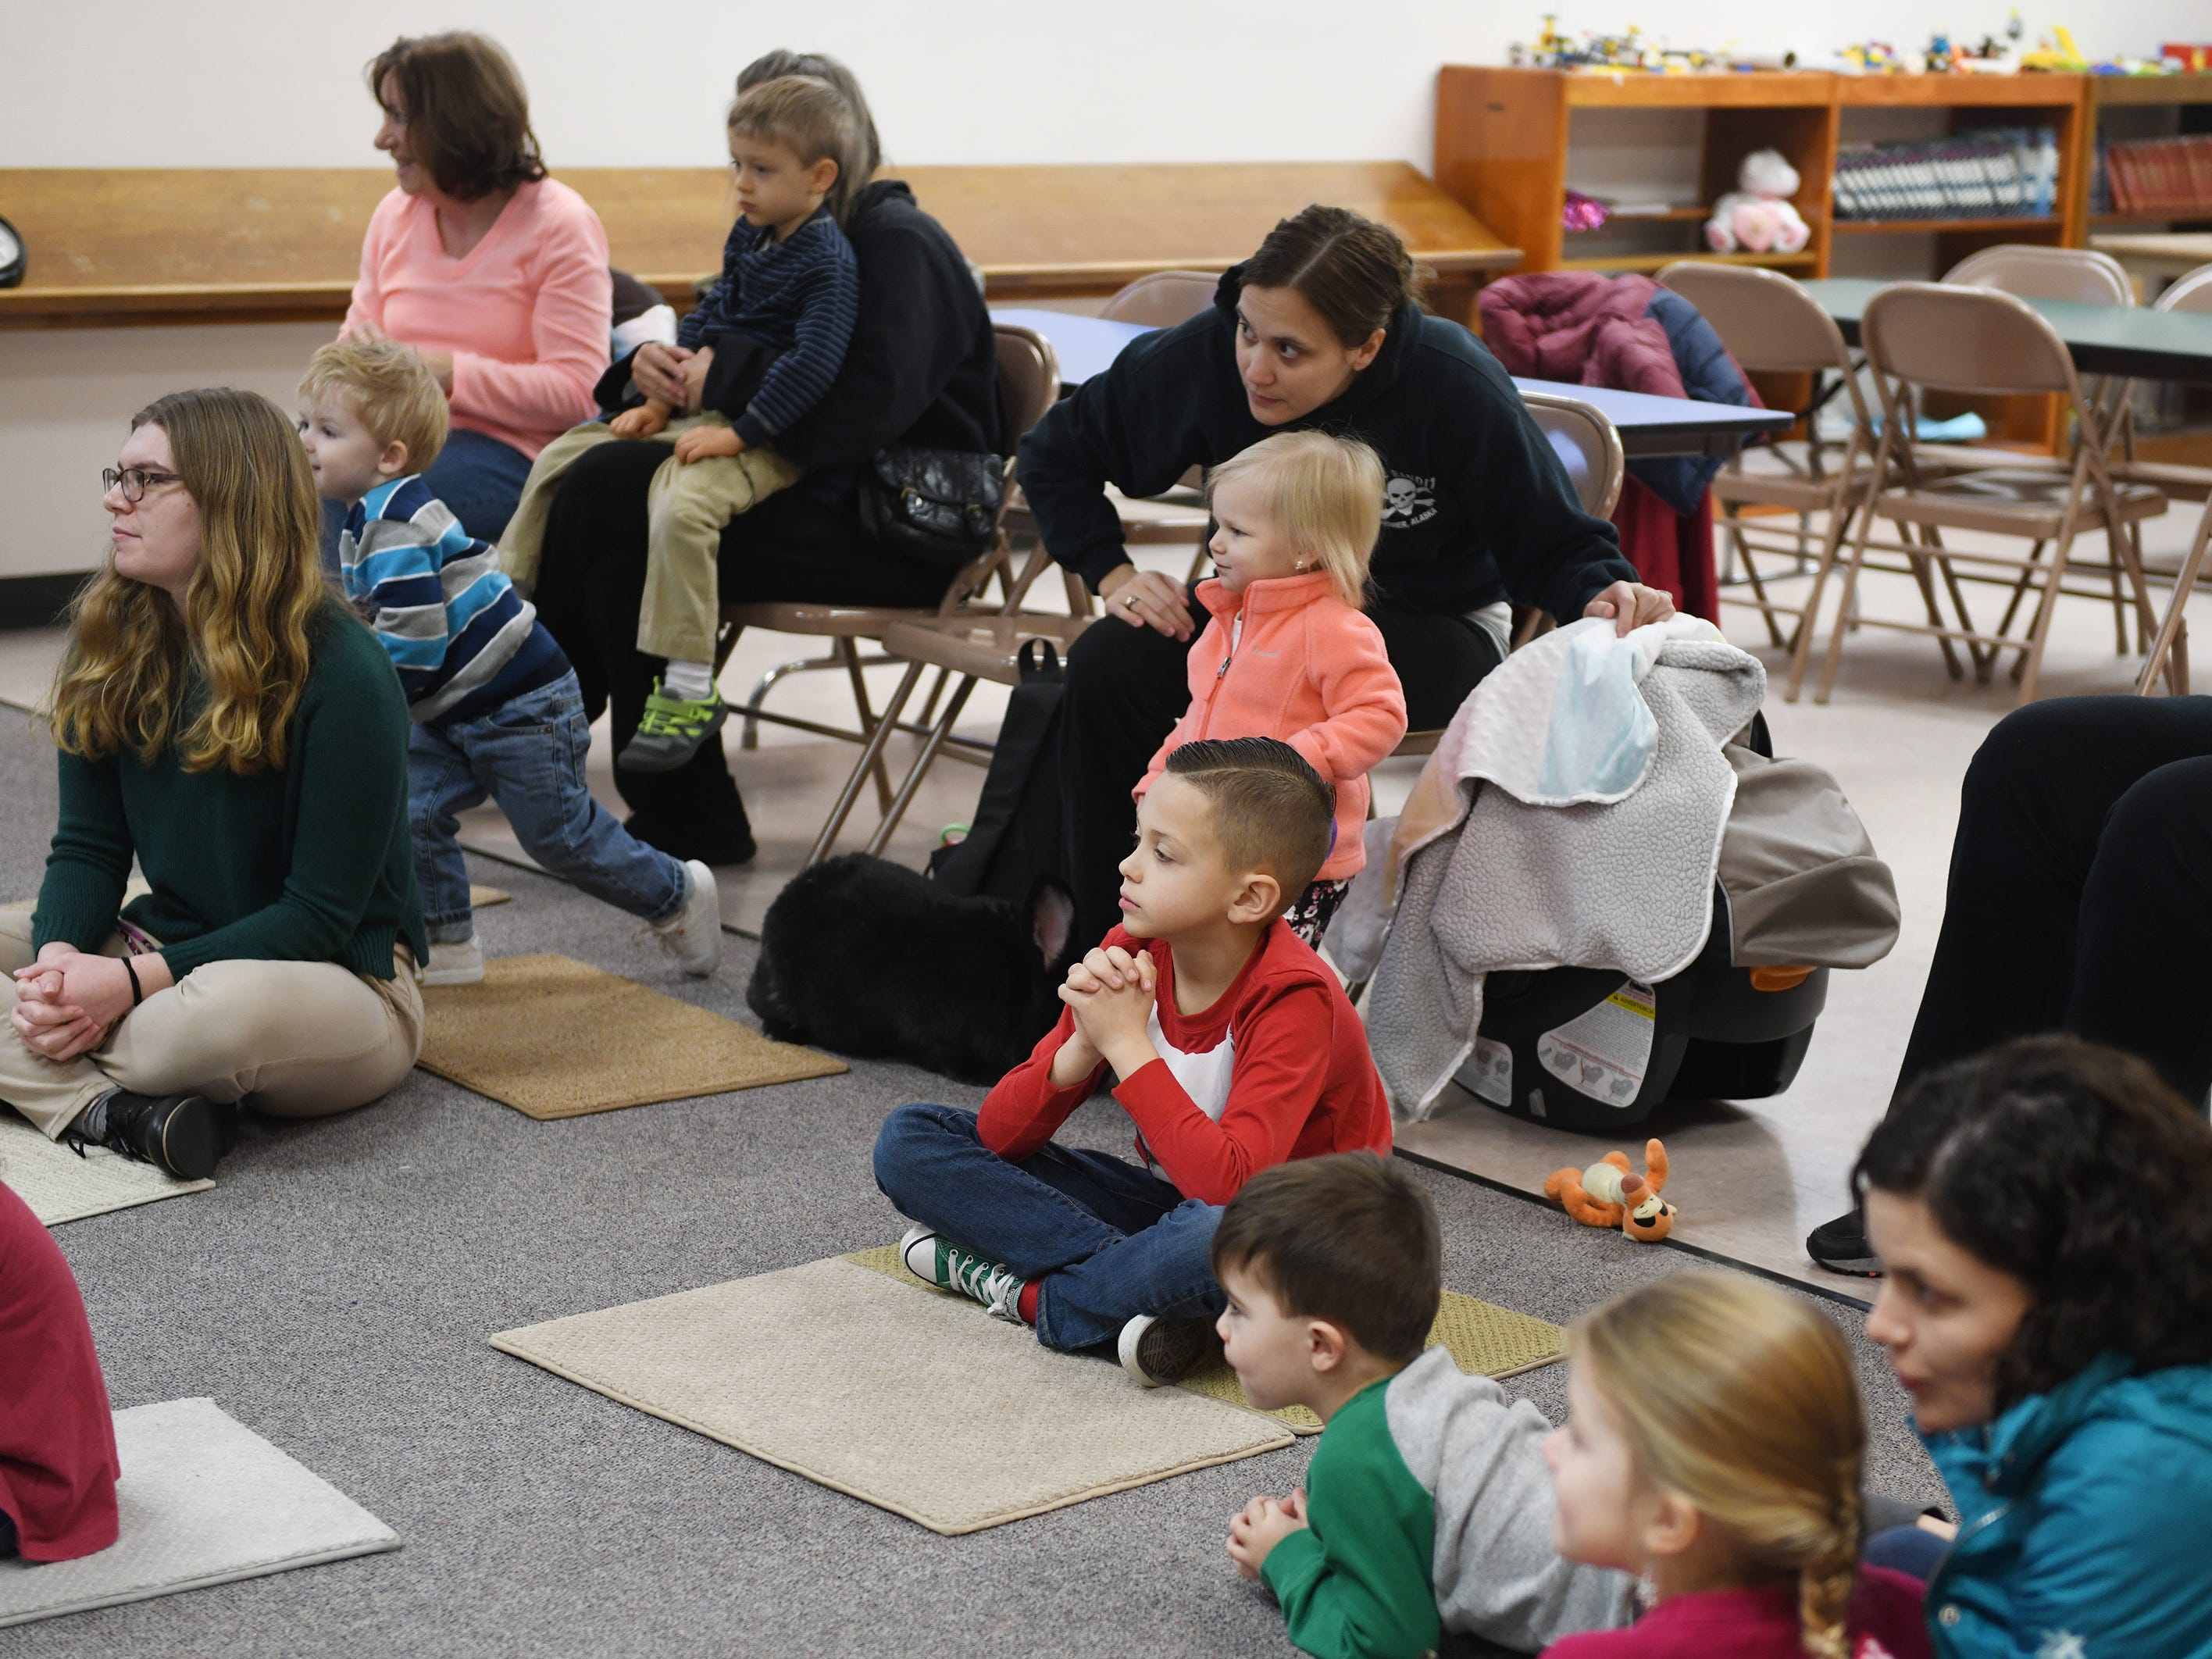 Kids enjoy Zoobrary time at the Bridgeton Public Library on Thursday, December 20. The free program gave preschool children the opportunity to learn about and meet live zoo animals along with story telling by Cohanzick Zoo zookeeper Alison Bohn.